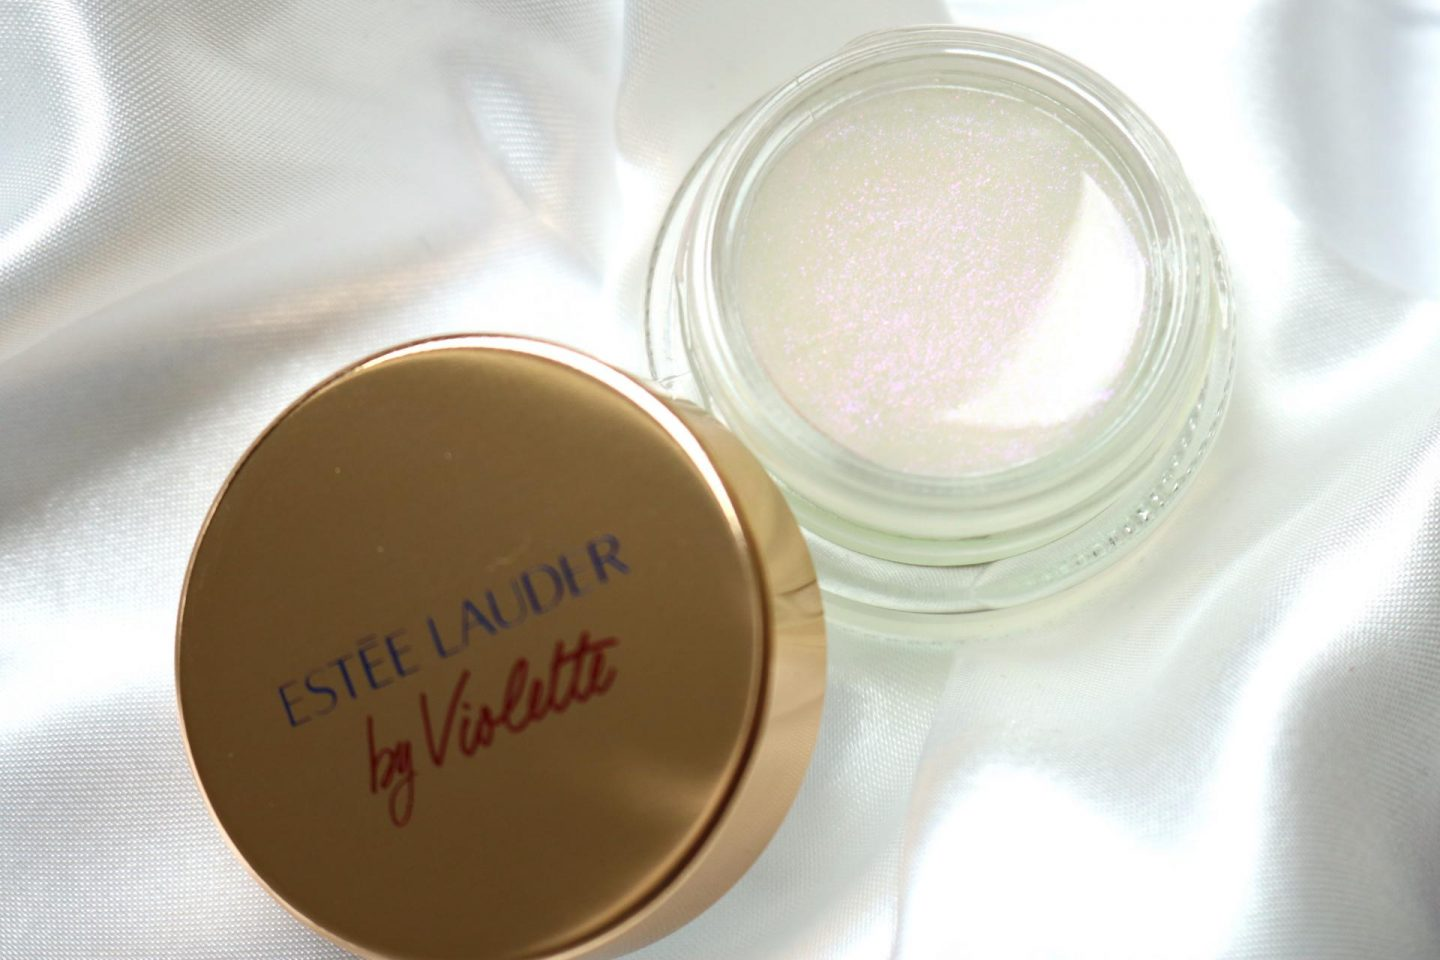 estee-lauder-by-violette-la-dangereuse-review_6207